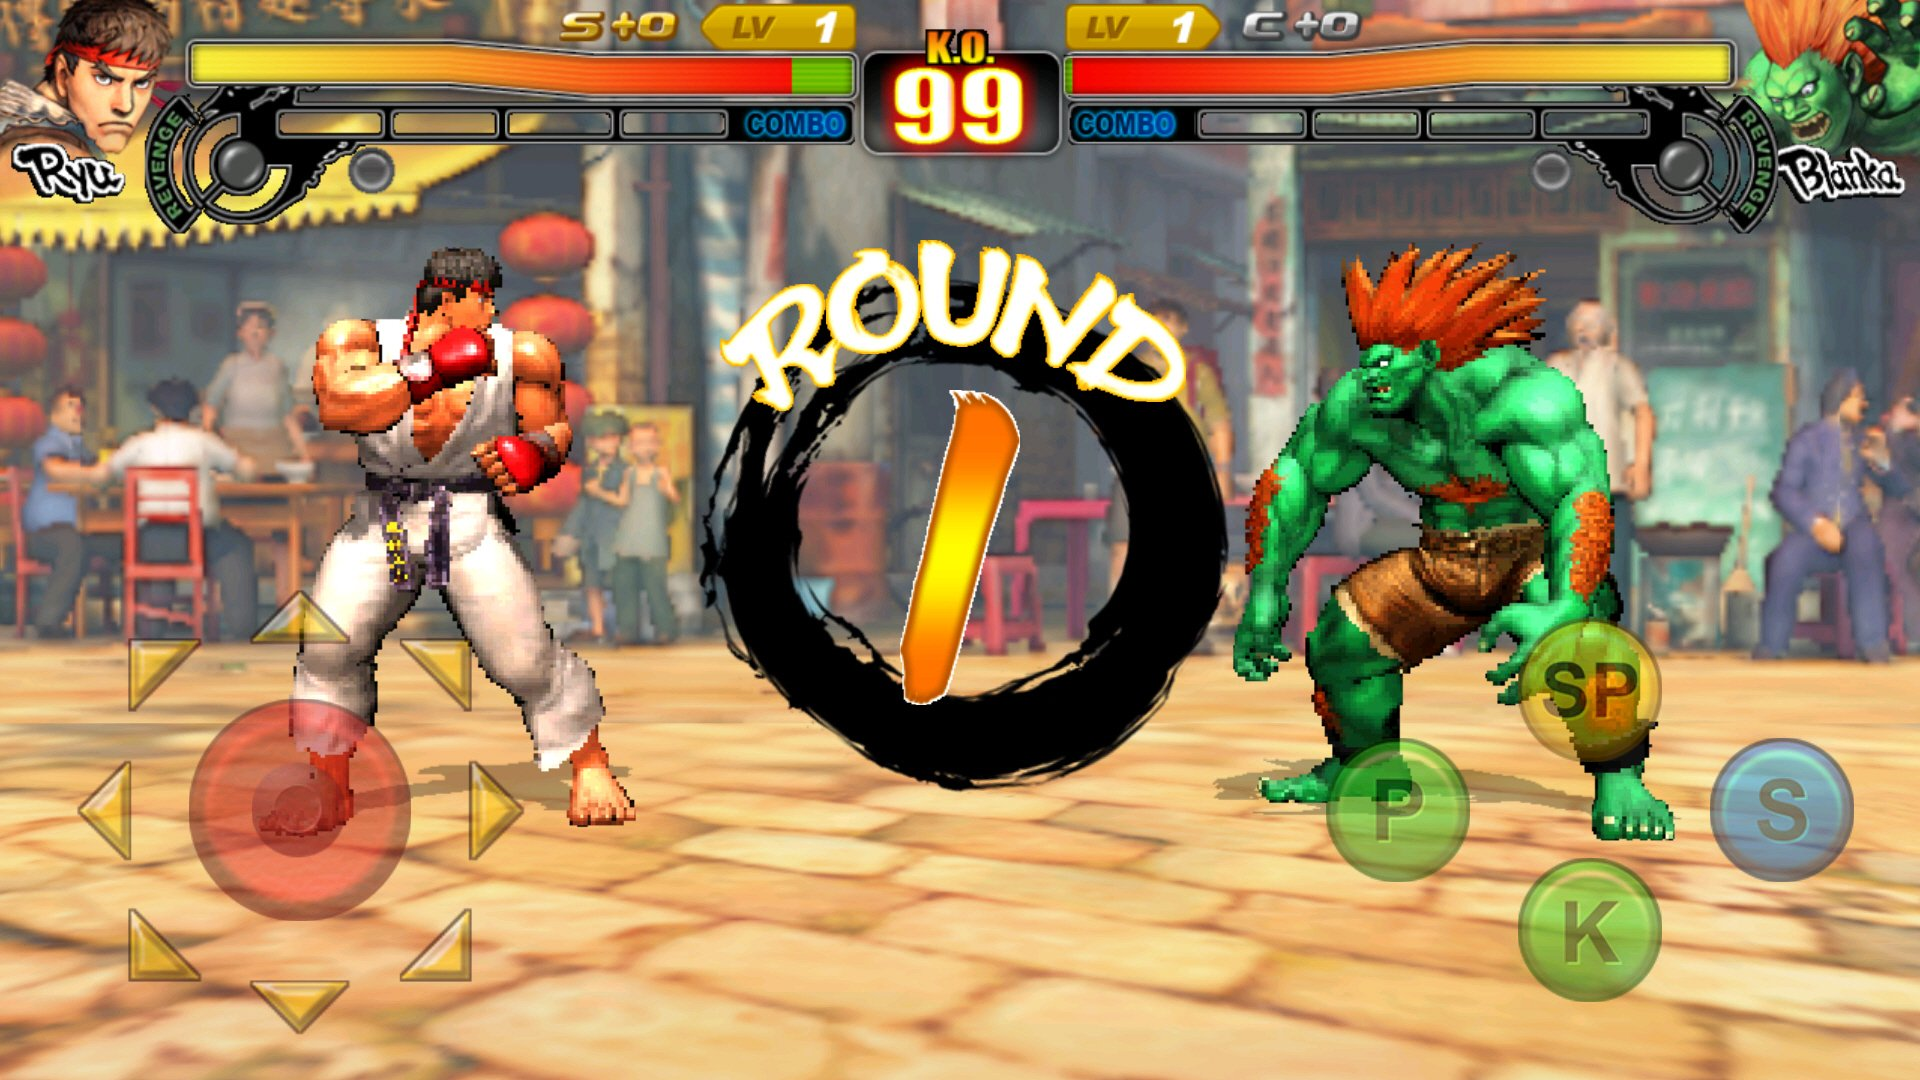 Street Fighter 2 Game - Play online at